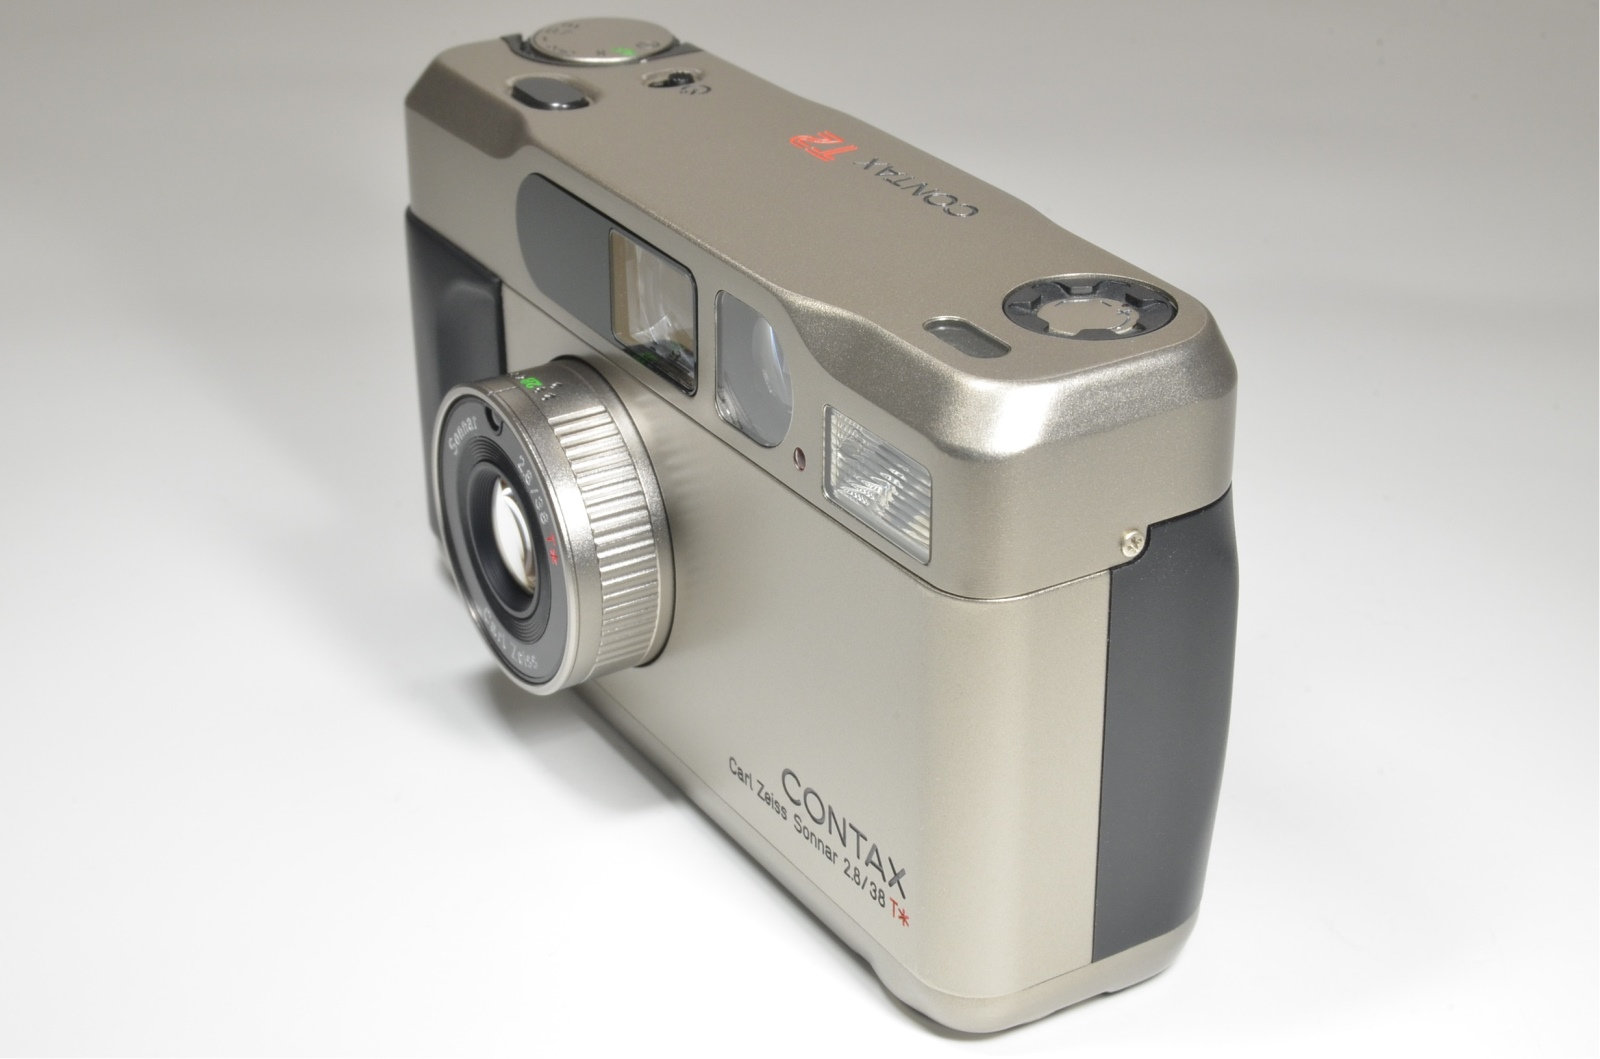 contax t2 titanium silver camera boxed with extra data back panel